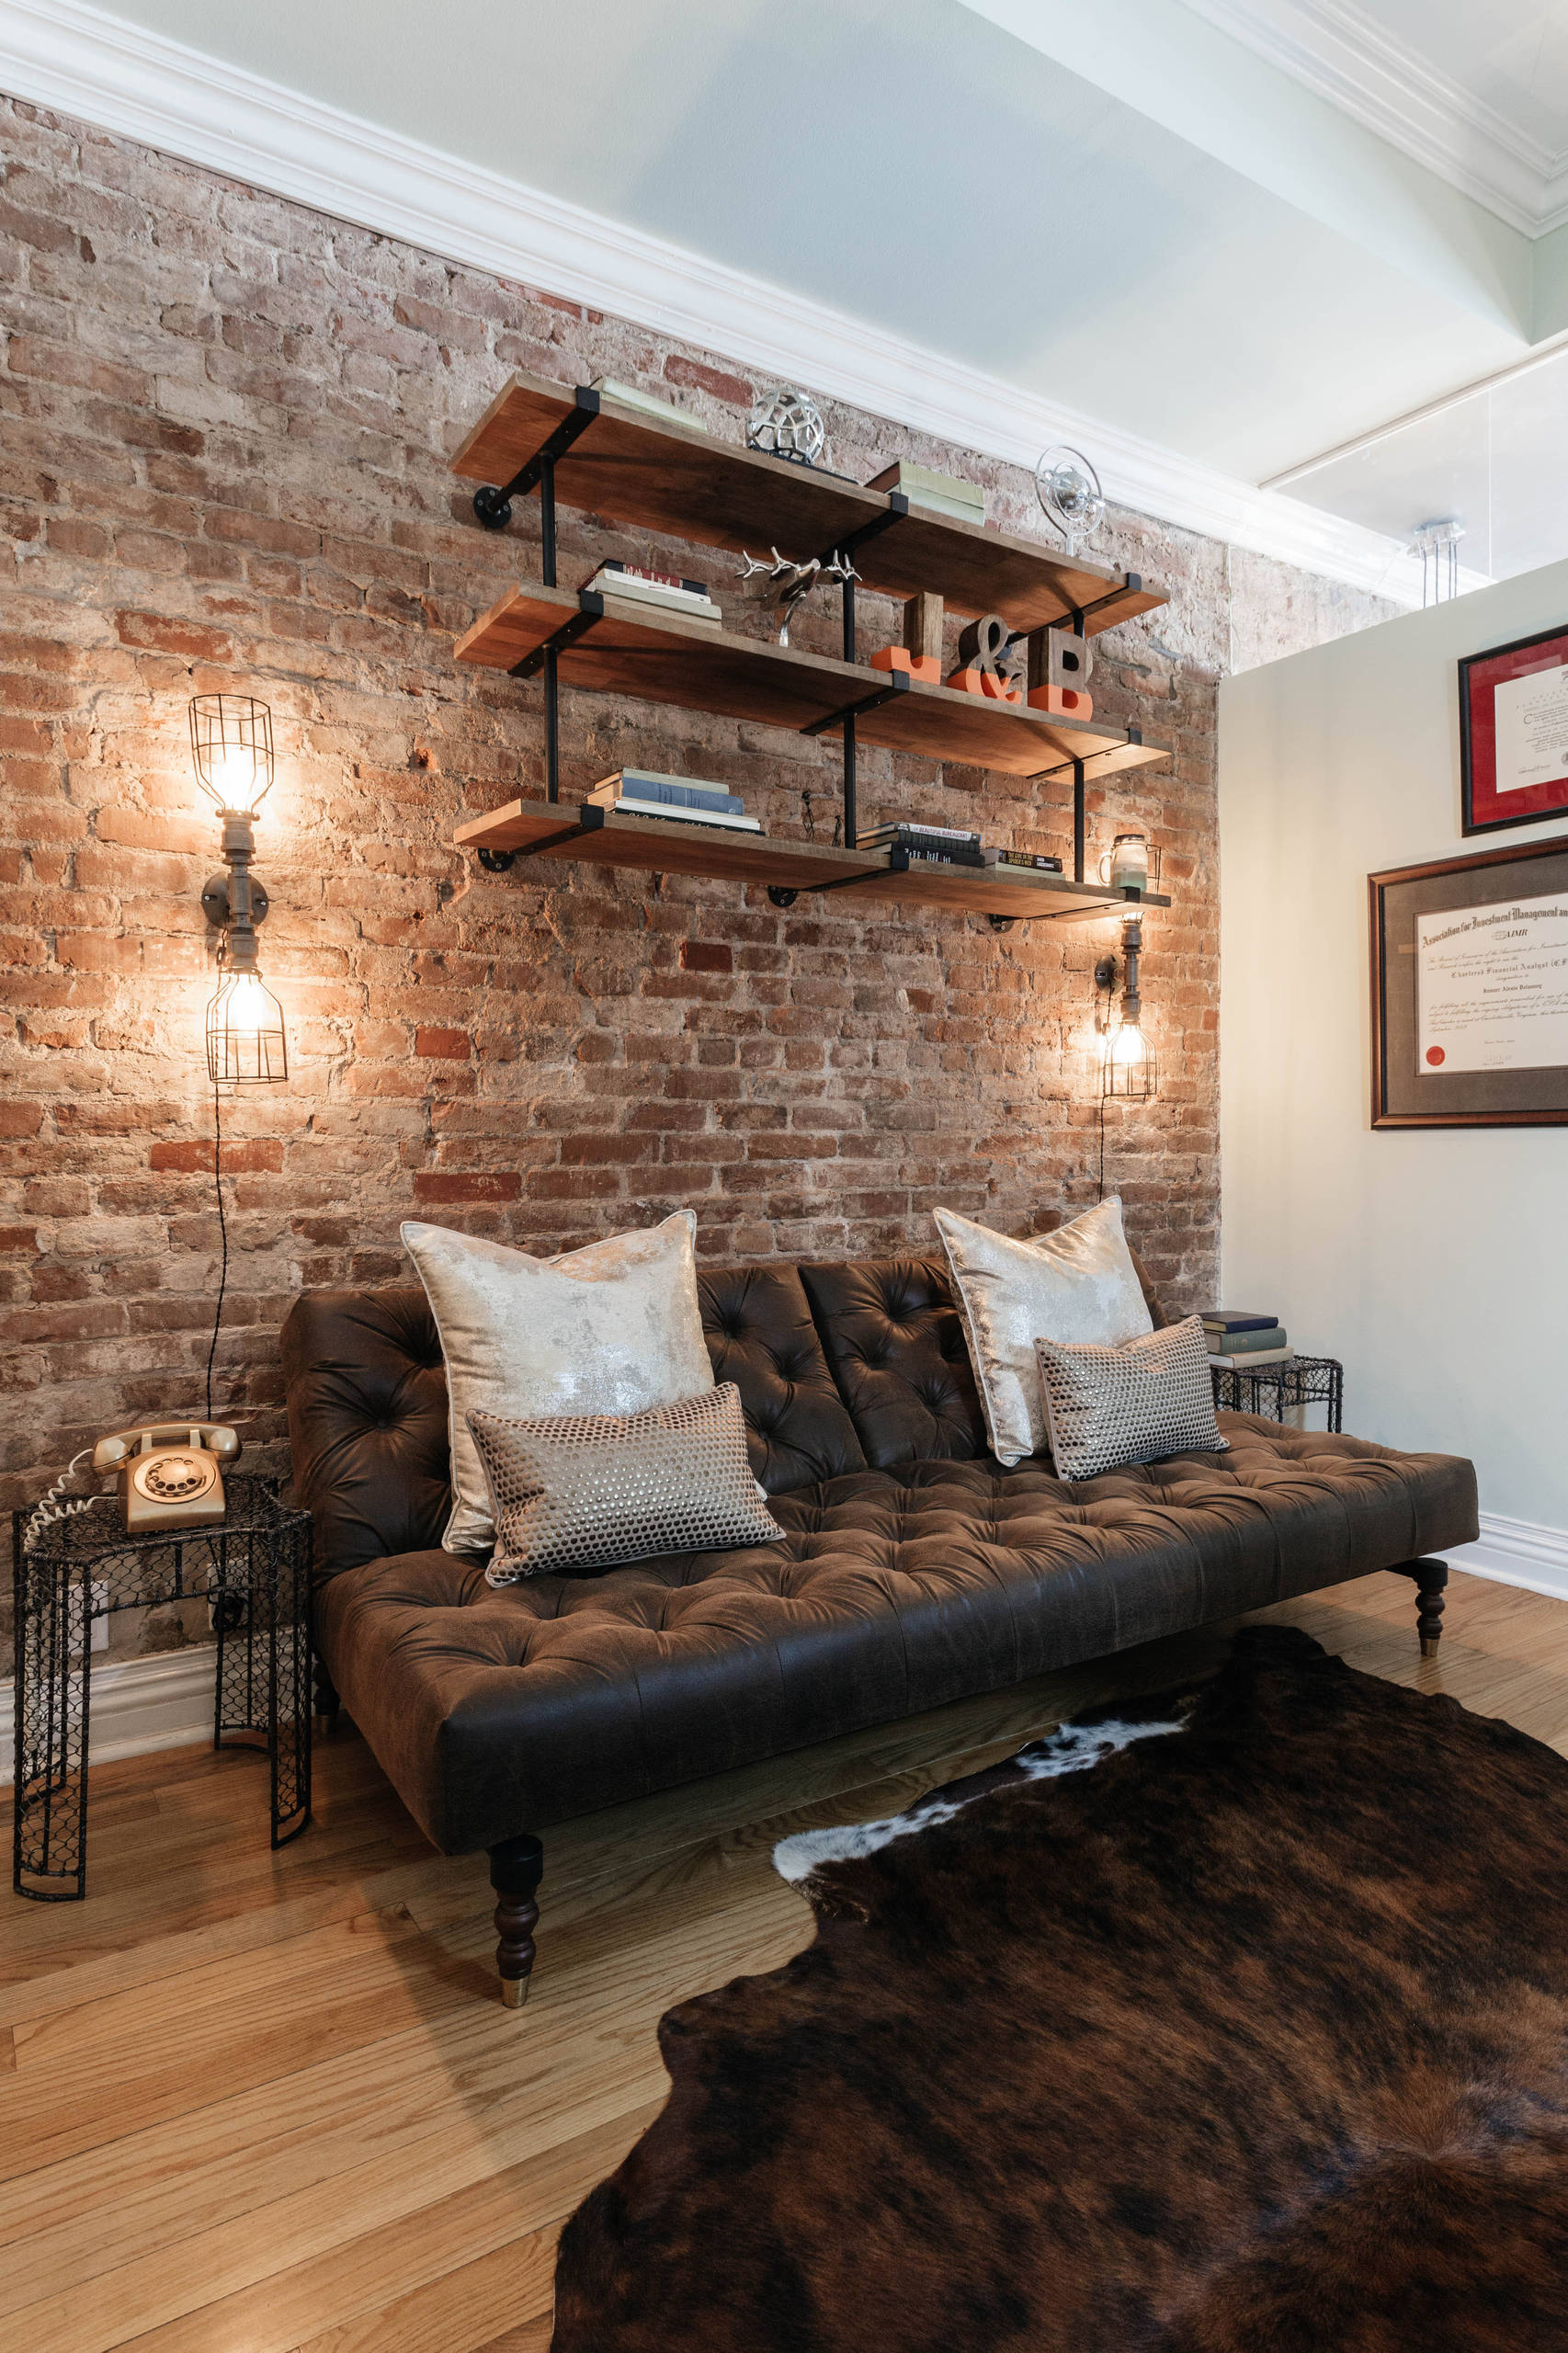 75 Beautiful Small Study Room Pictures Ideas November 2020 Houzz